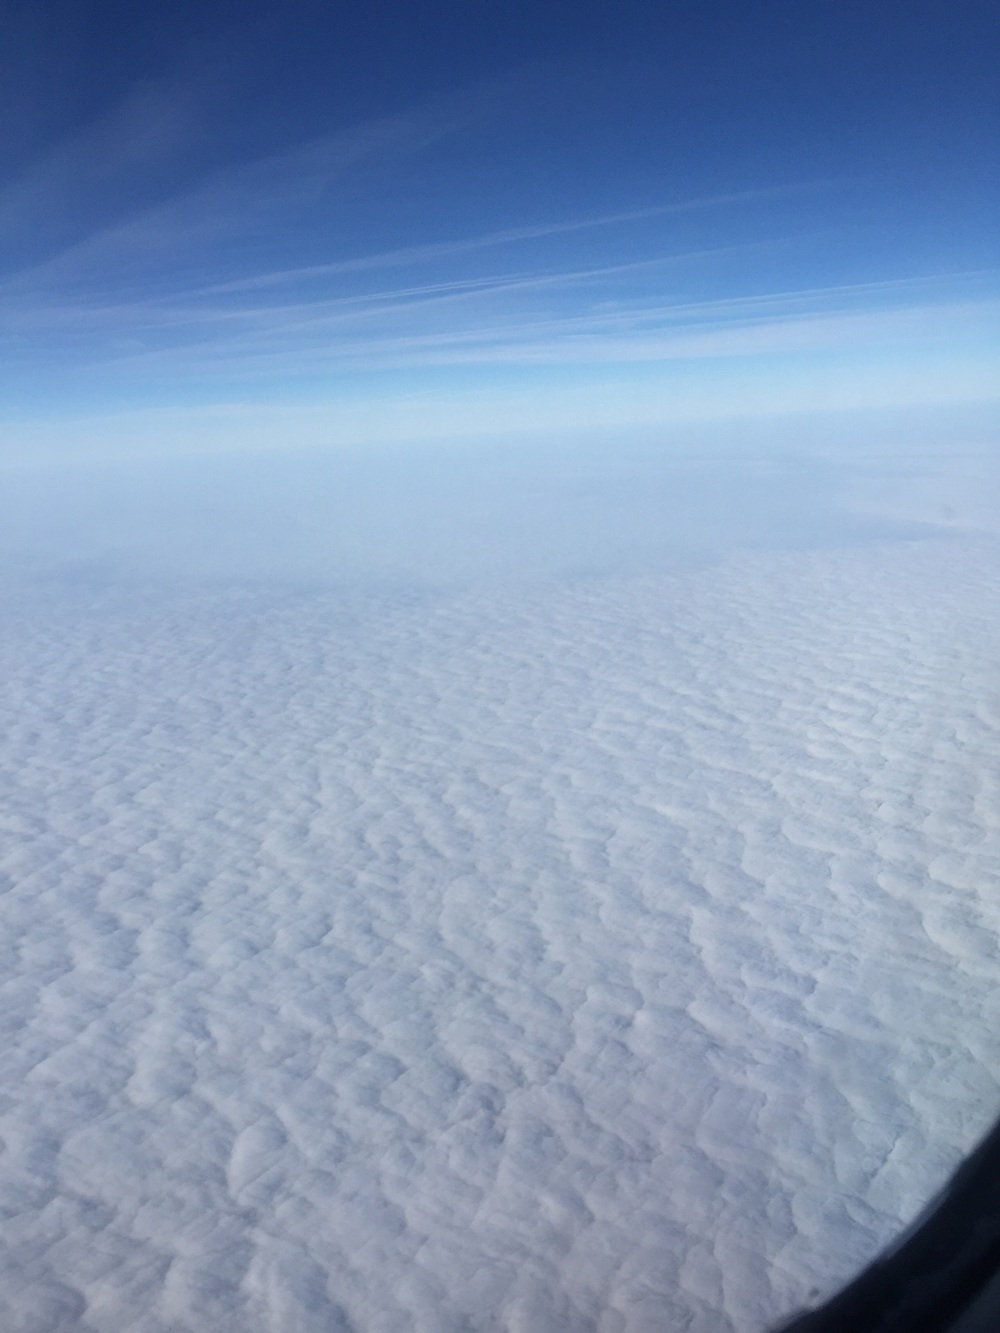 That's not sand it's clouds.. It would hurt more to land on that